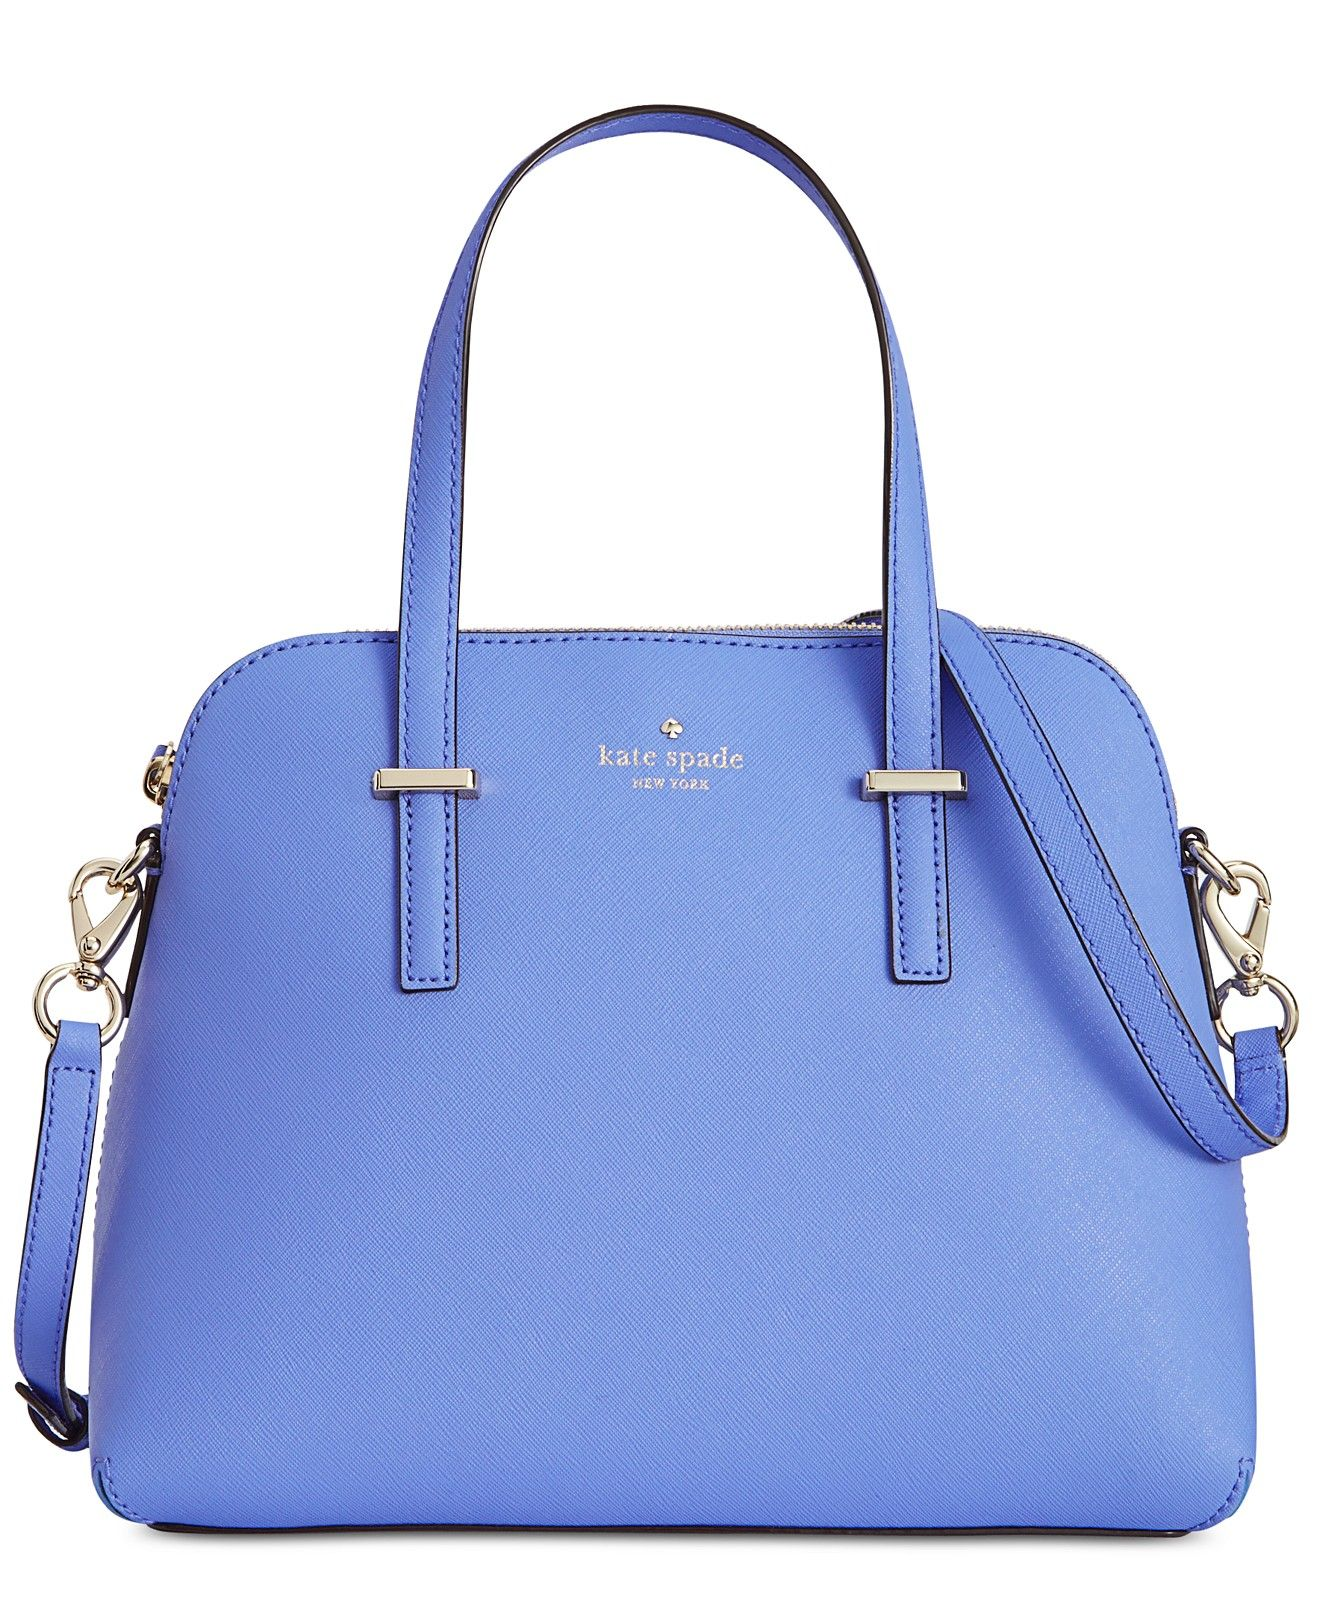 kate spade new york Cedar Street Maise Convertible Crossbody - kate spade  new york handbags - 68f1d61a3d1be